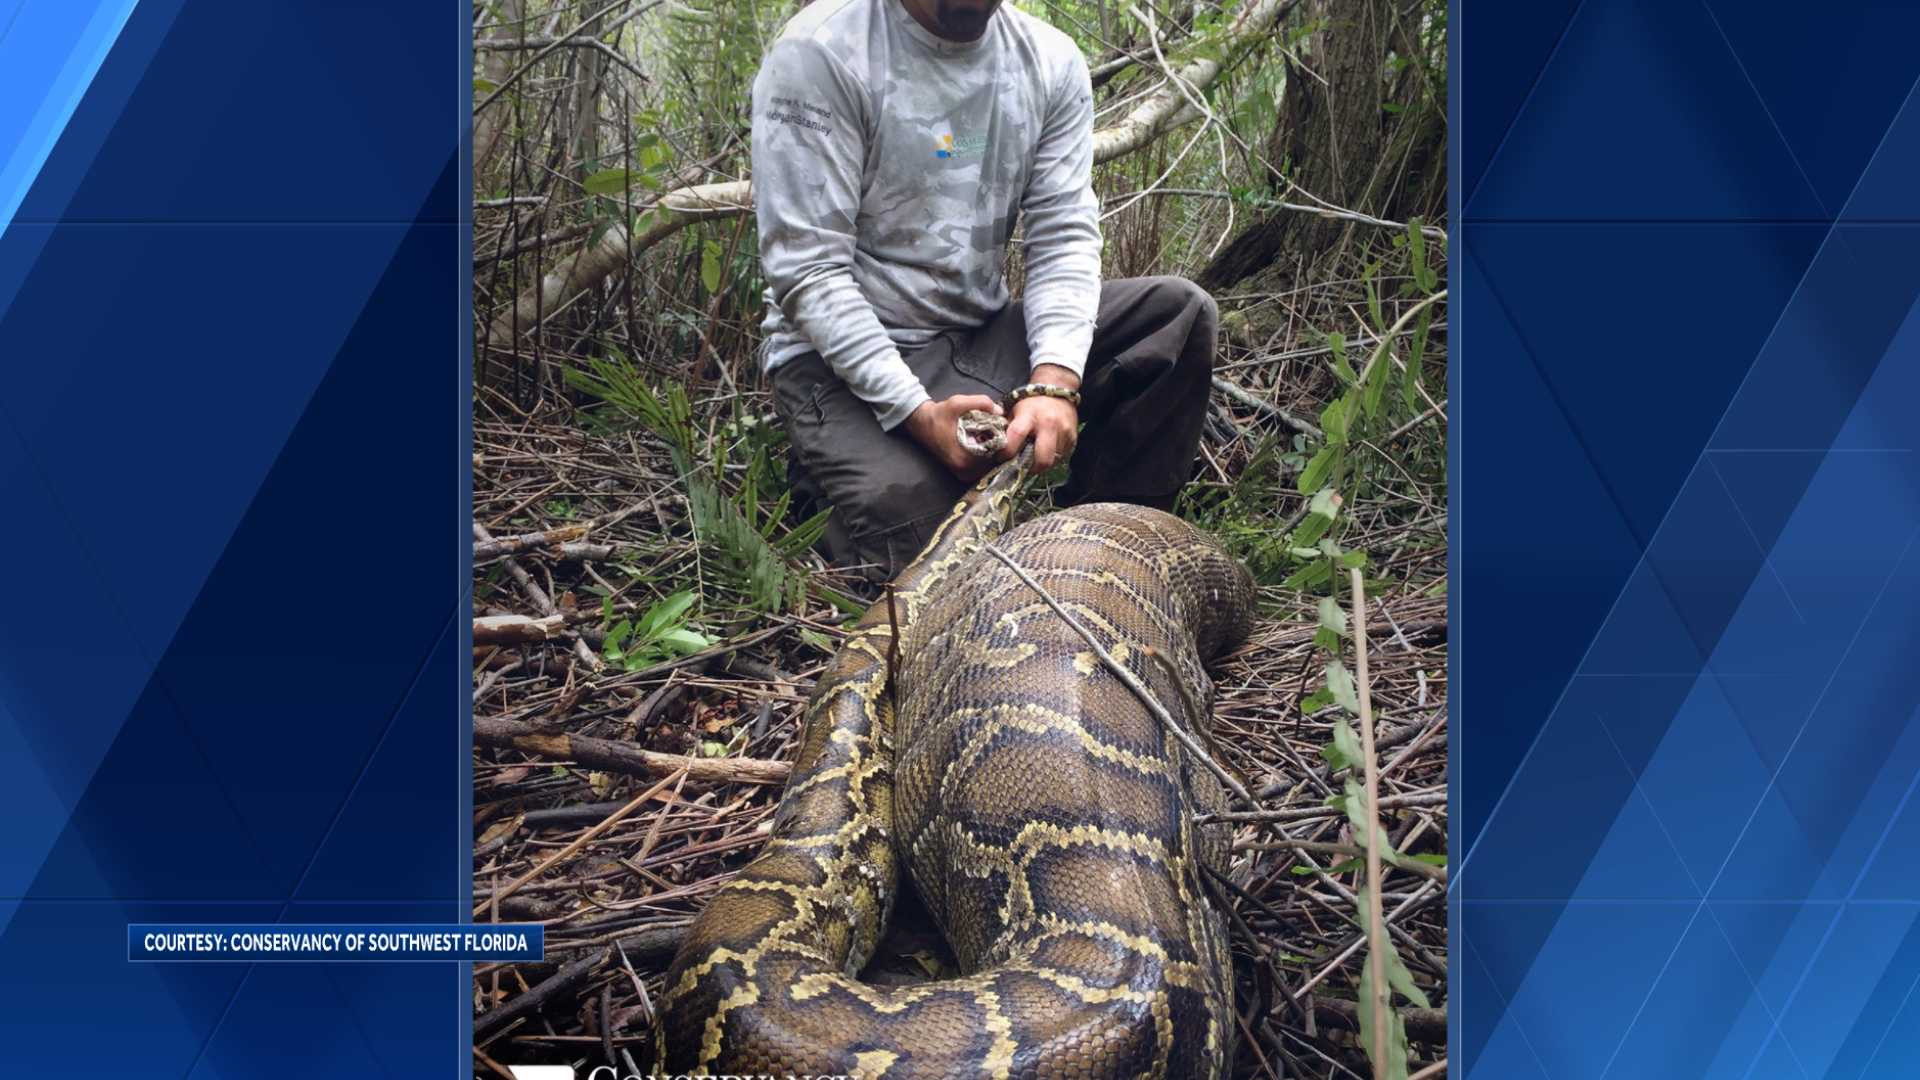 Python Devours Deer Fawn in Florida, Alarming Scientists